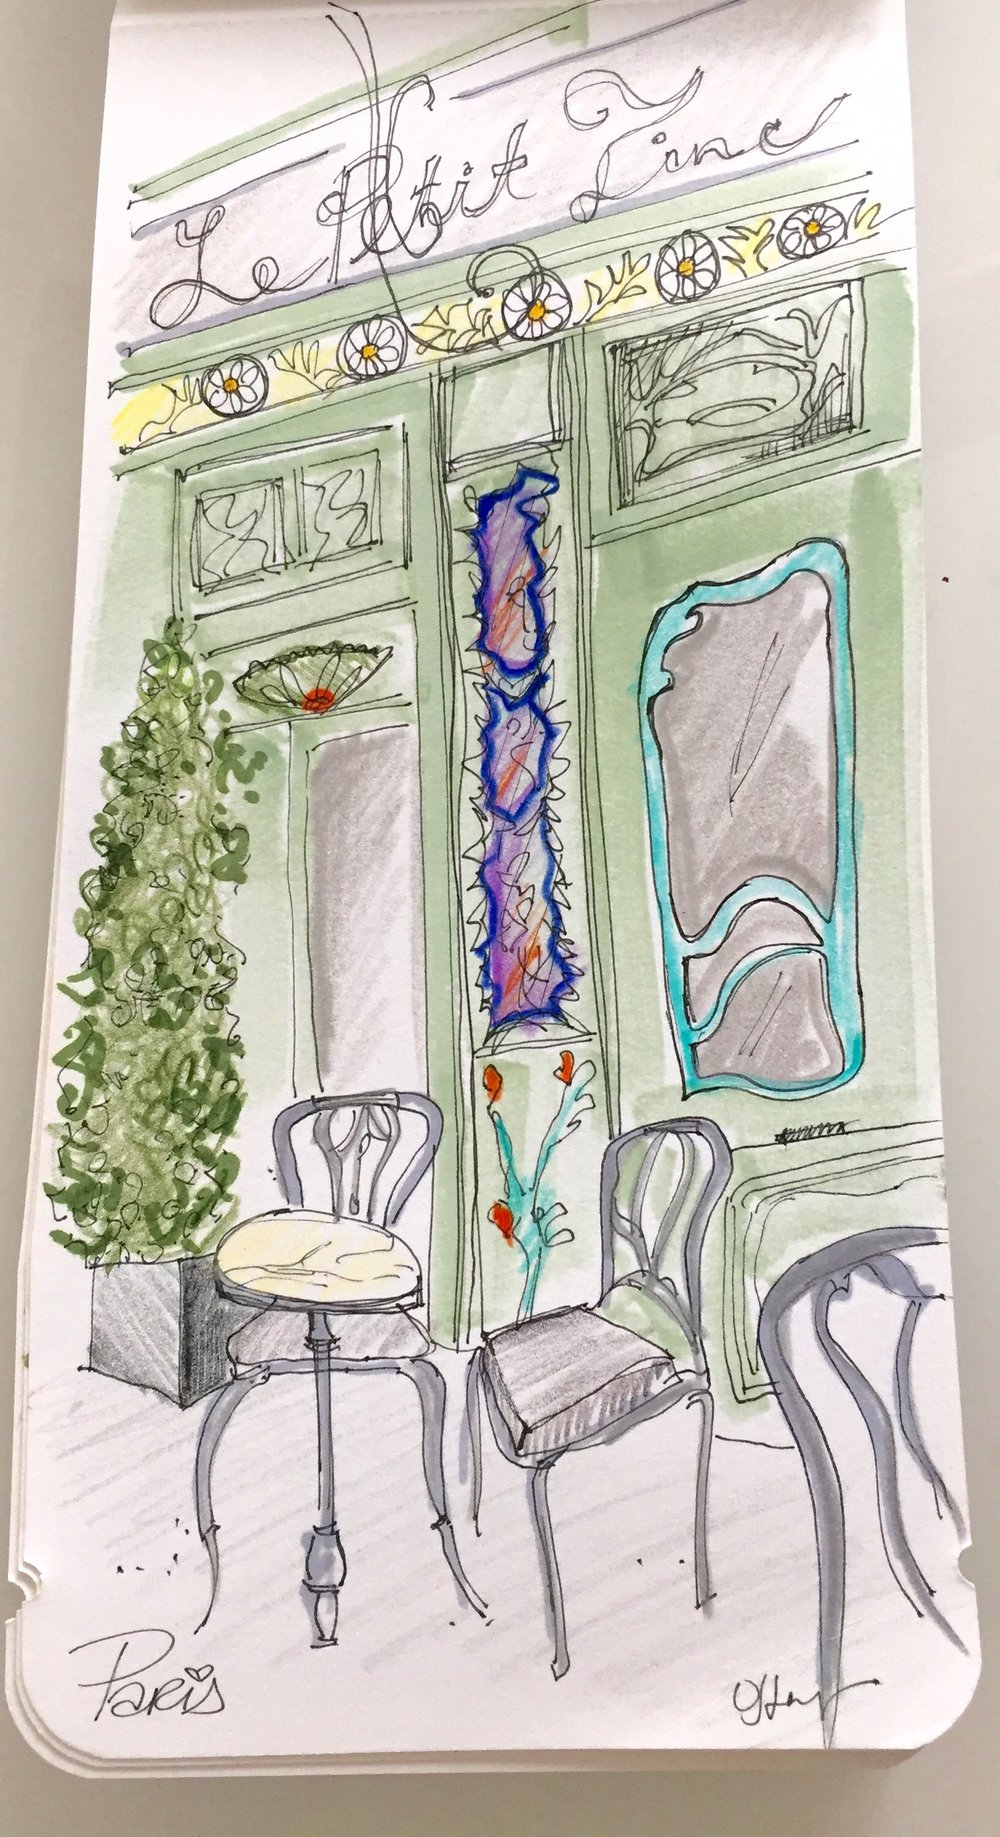 An 'art nouveau' style cafe in Paris from our pit stop there over four years ago.